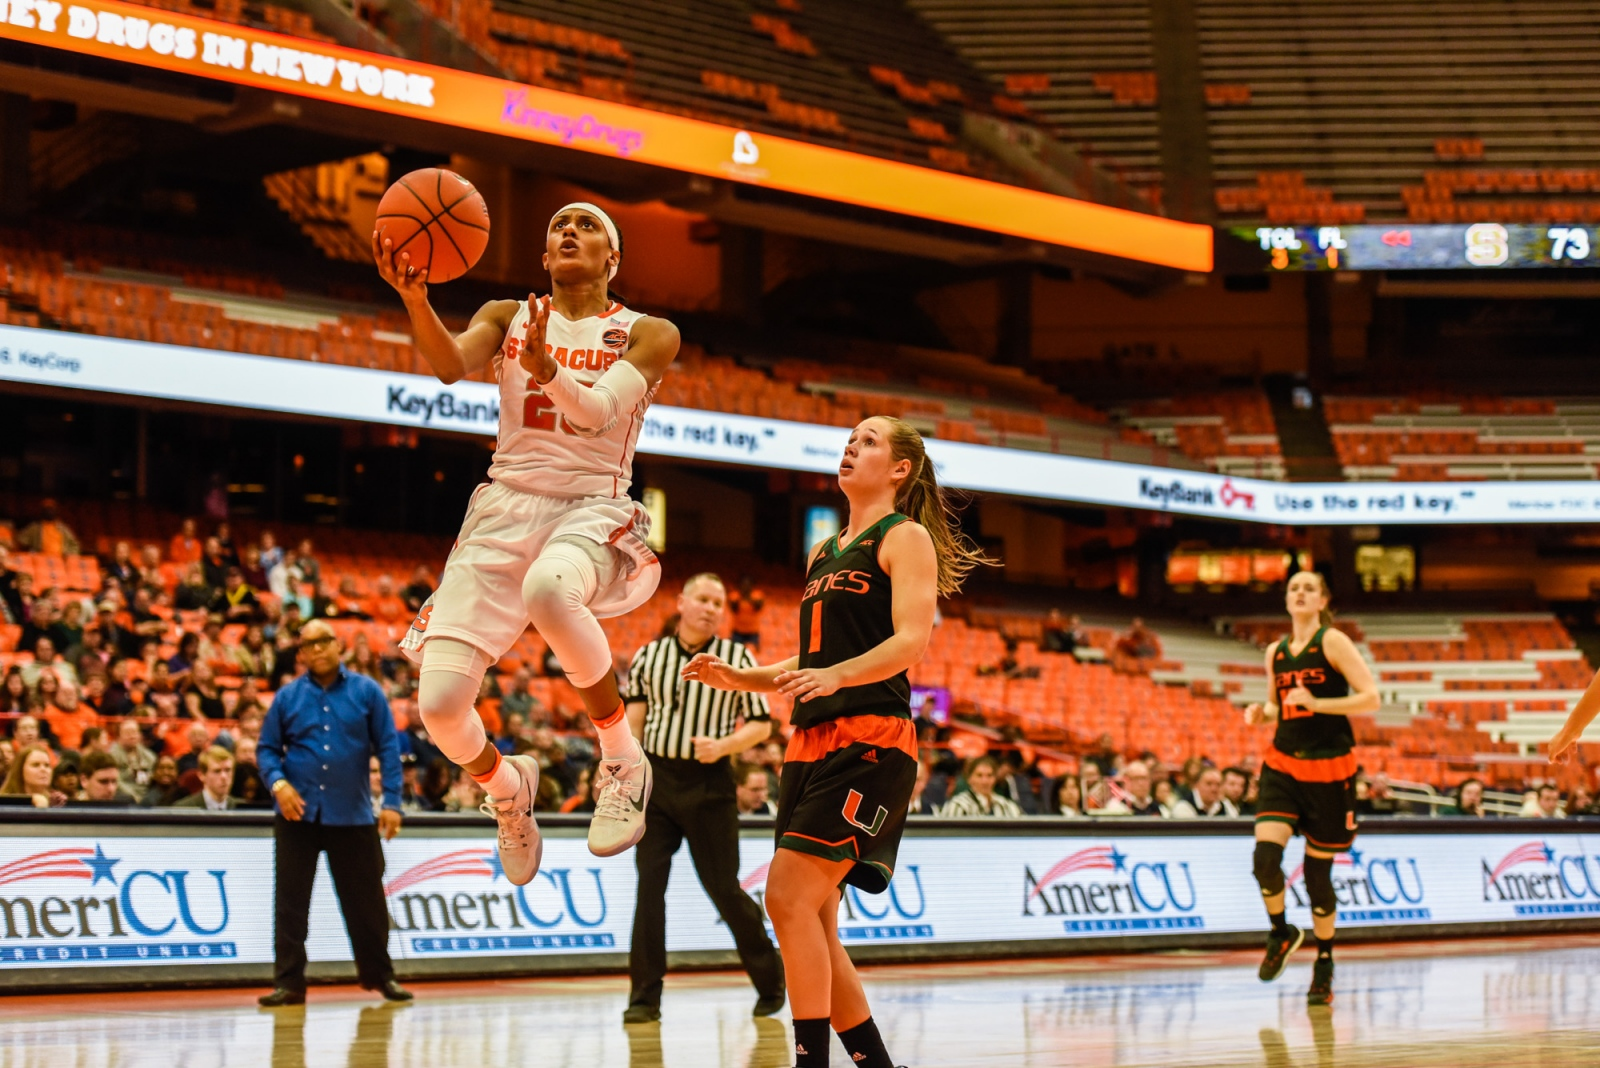 The Syracuse women's basketball team upended Miami in a much-needed win with a tenacious defensive effort and relentless speed in transition offense.